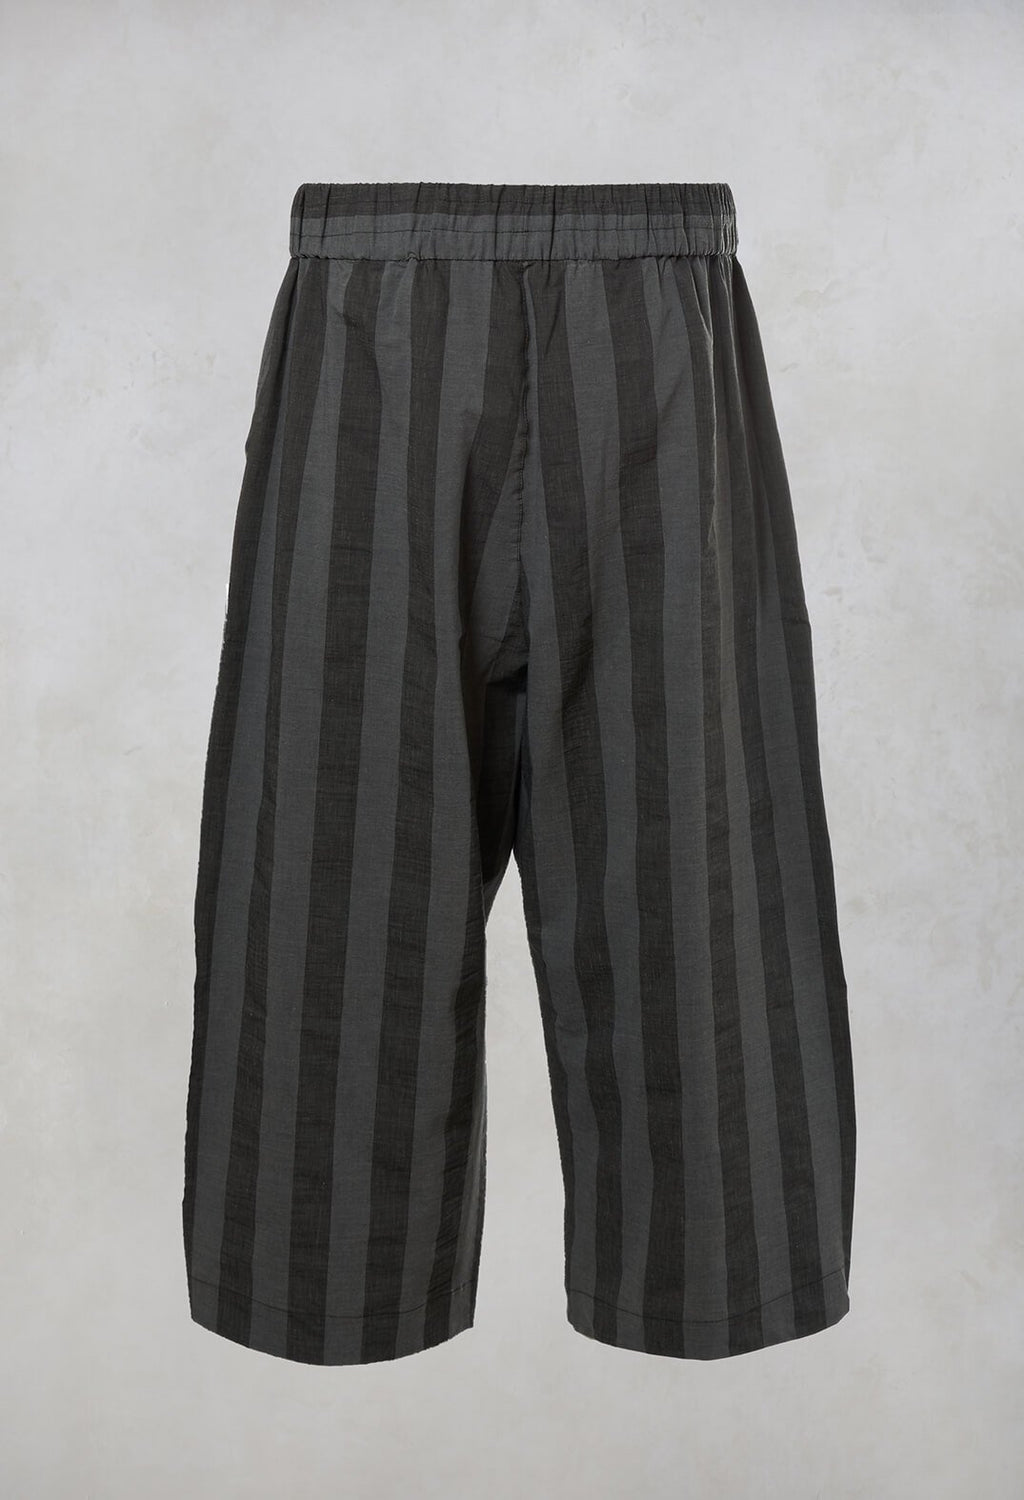 Short Striped Trousers in Dark Grey